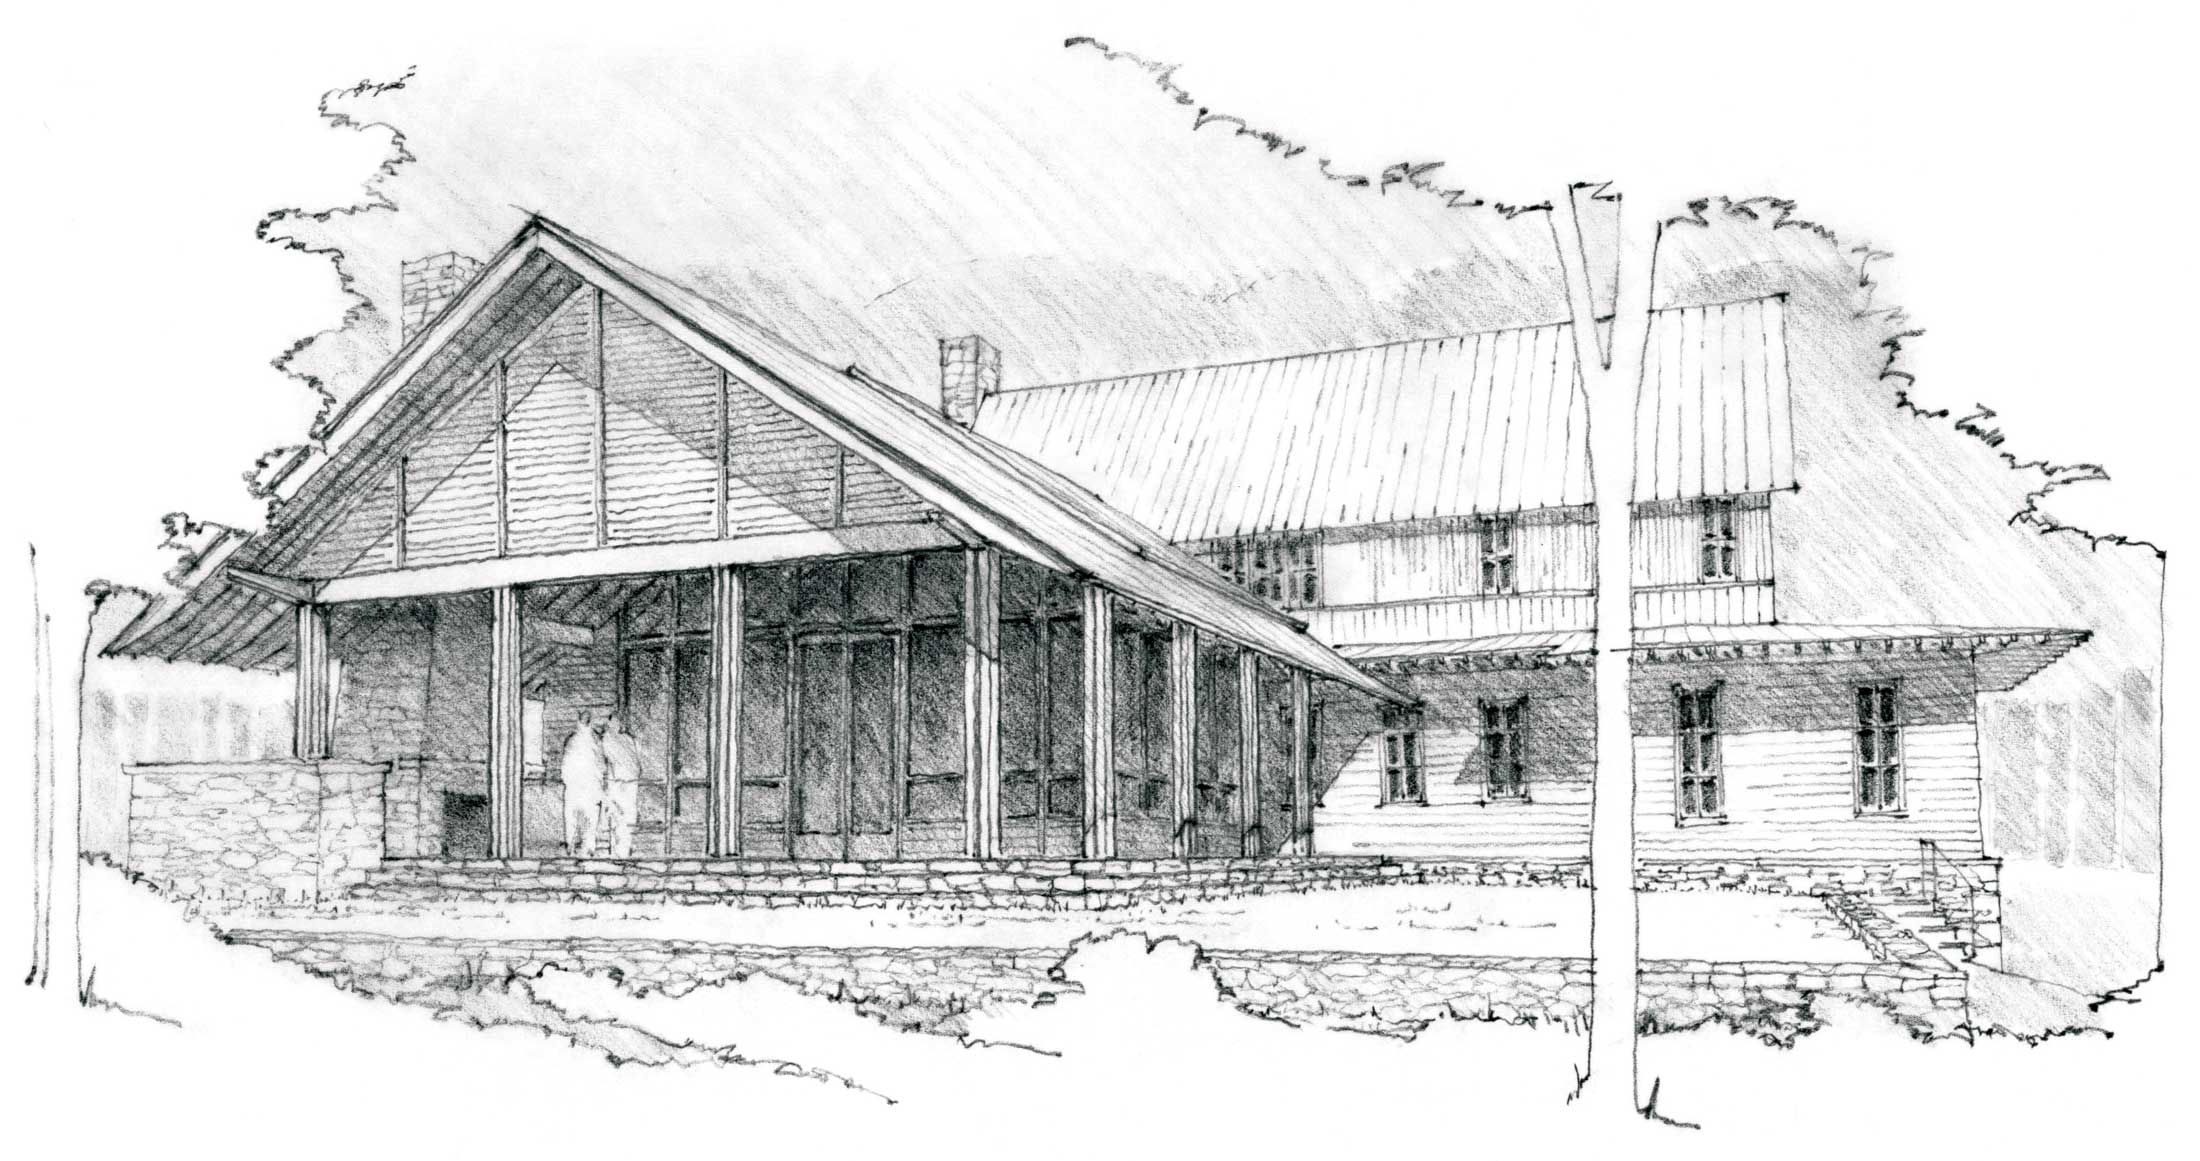 hand rendering of Nethermead home in Asheville